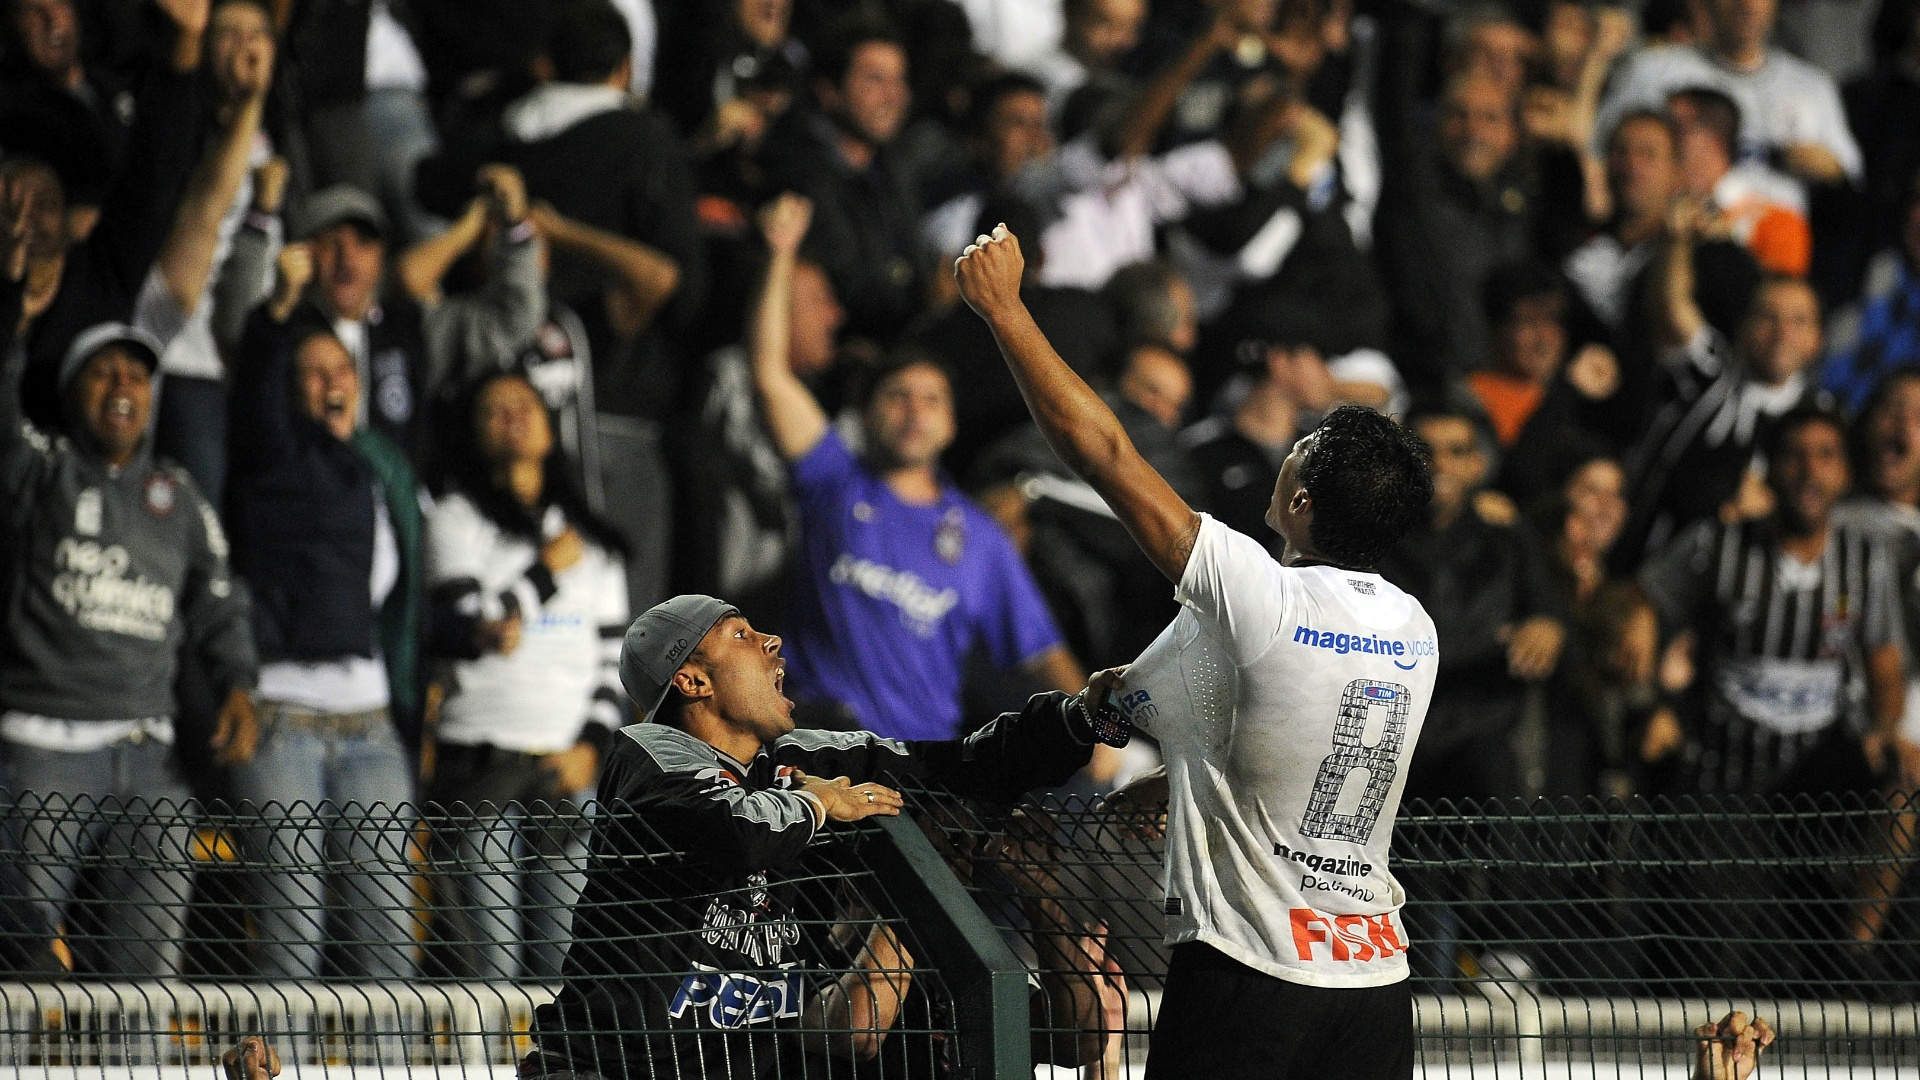 paulinho-comemora-o-gol-da-vitoria-do-co